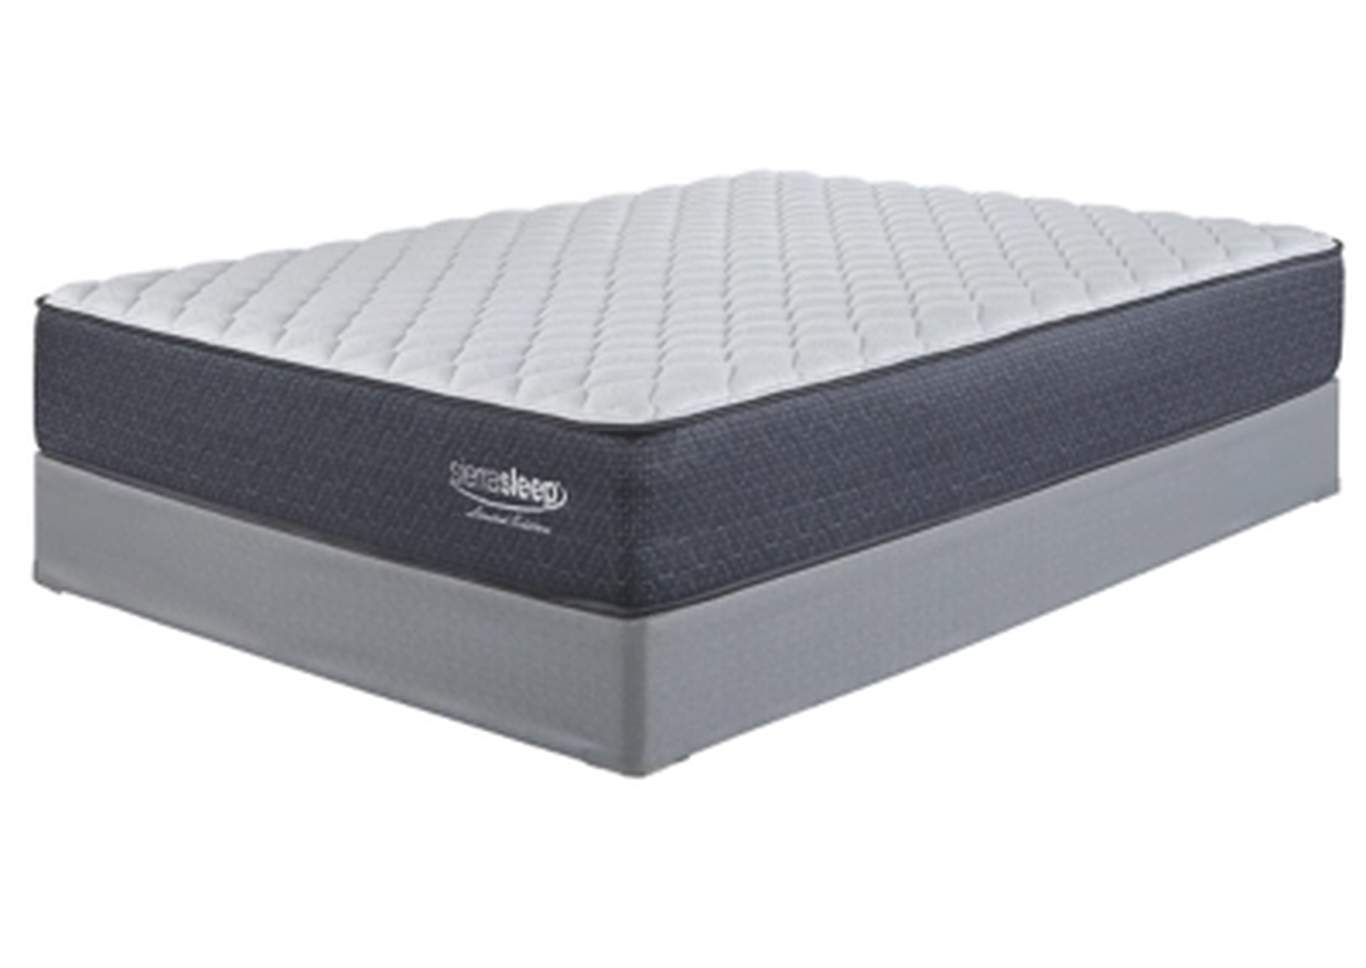 Limited Edition Firm White King Mattress w/Foundation,Sierra Sleep